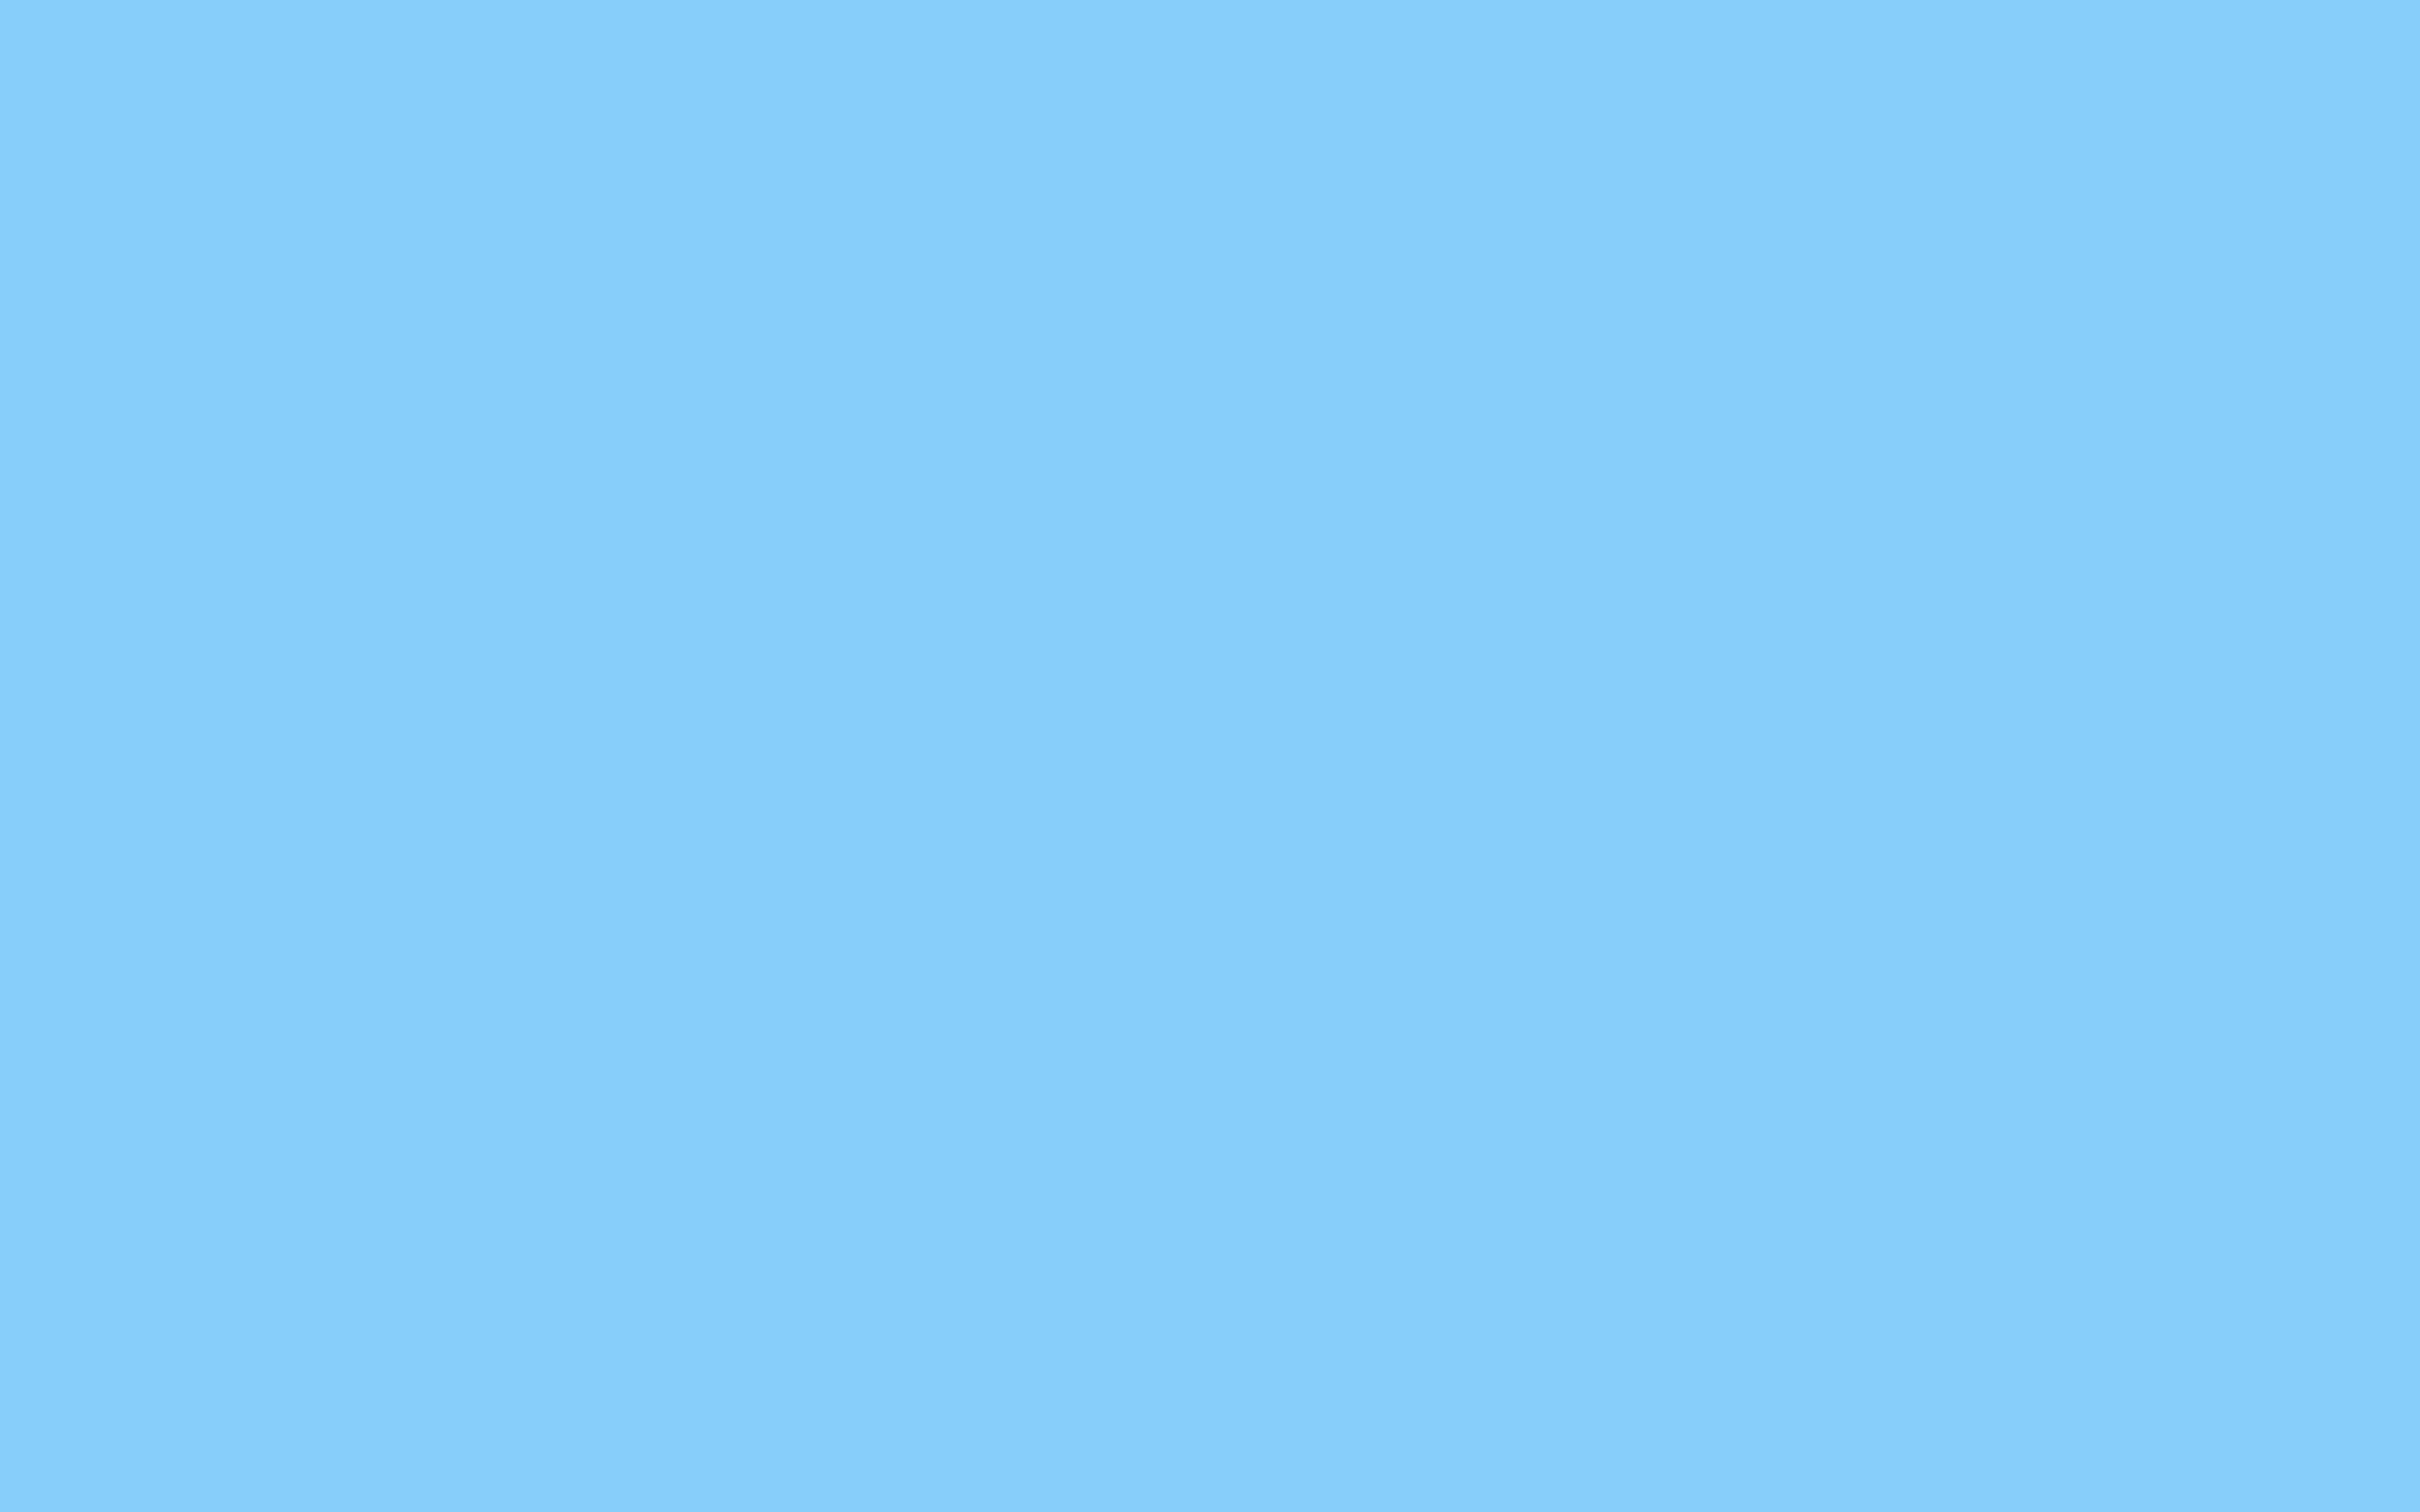 2880x1800 resolution Light Sky Blue solid color background view 2880x1800